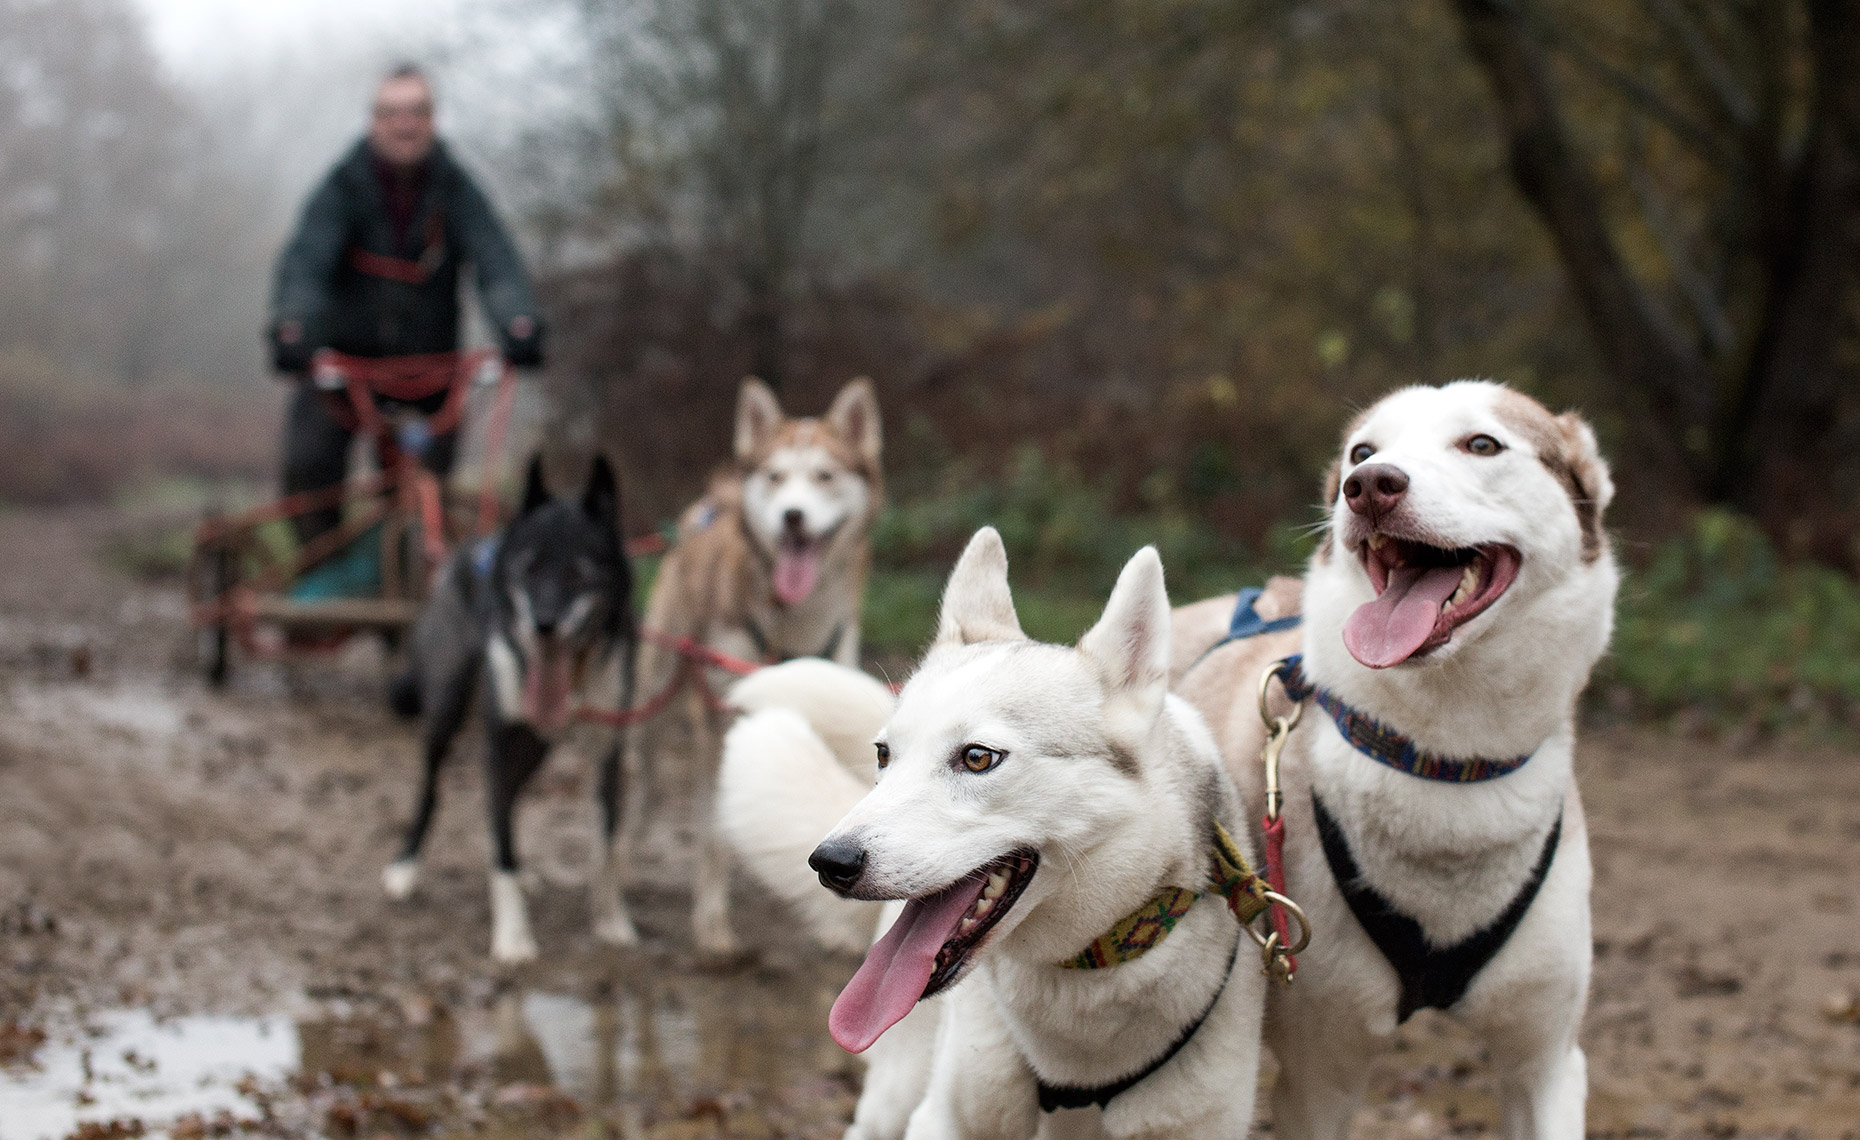 A team of Siberian Huskies photographed for a magazine feature on Sled Dog racing in Northamptonshire.